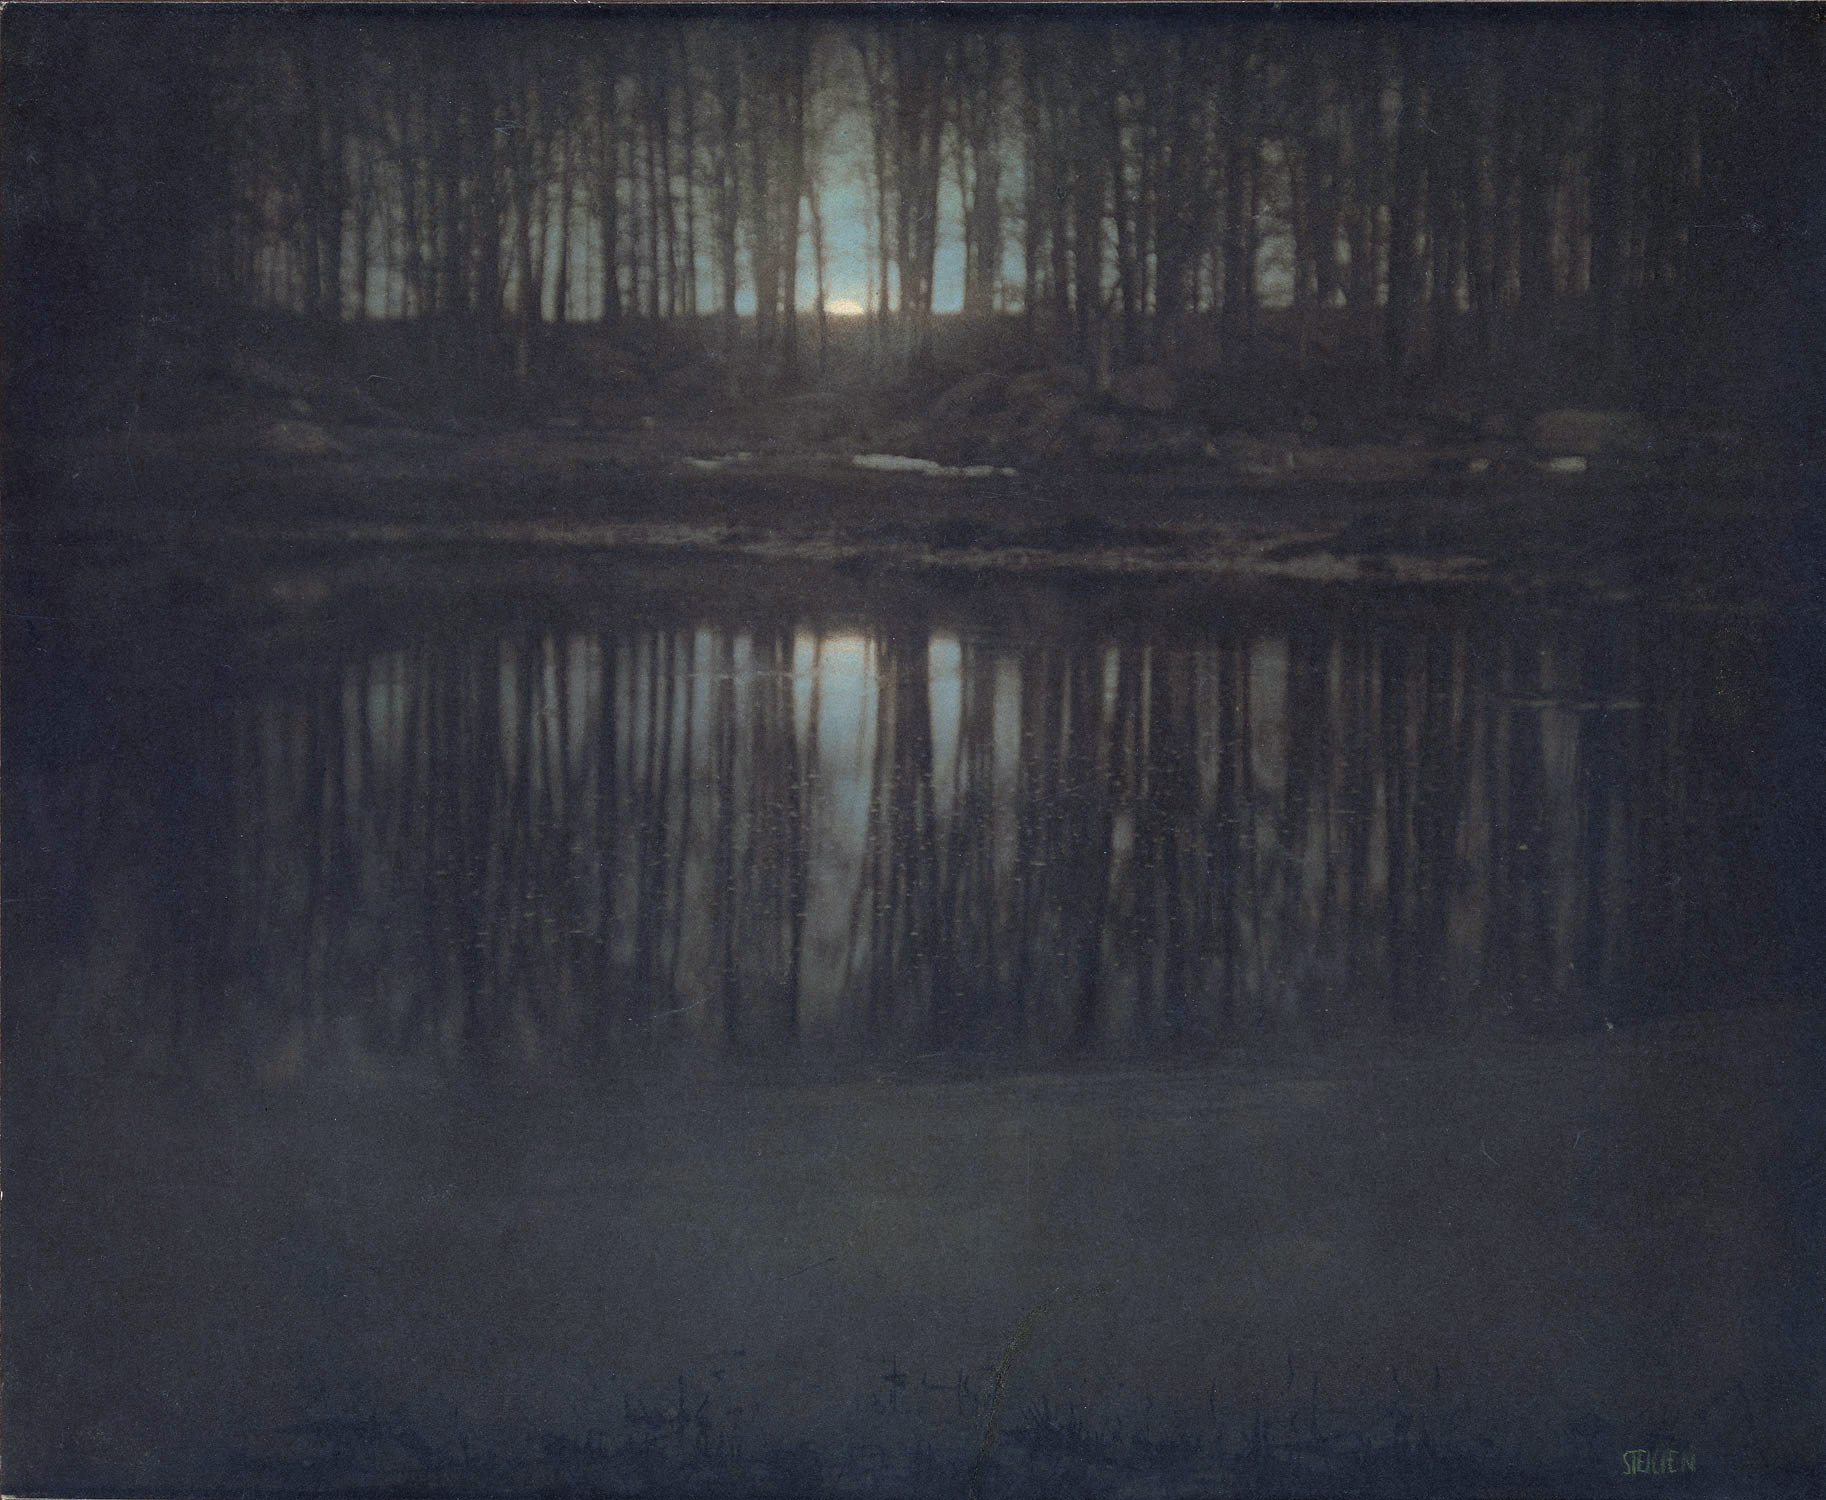 The Pond, Moonlight - Edward Steichen